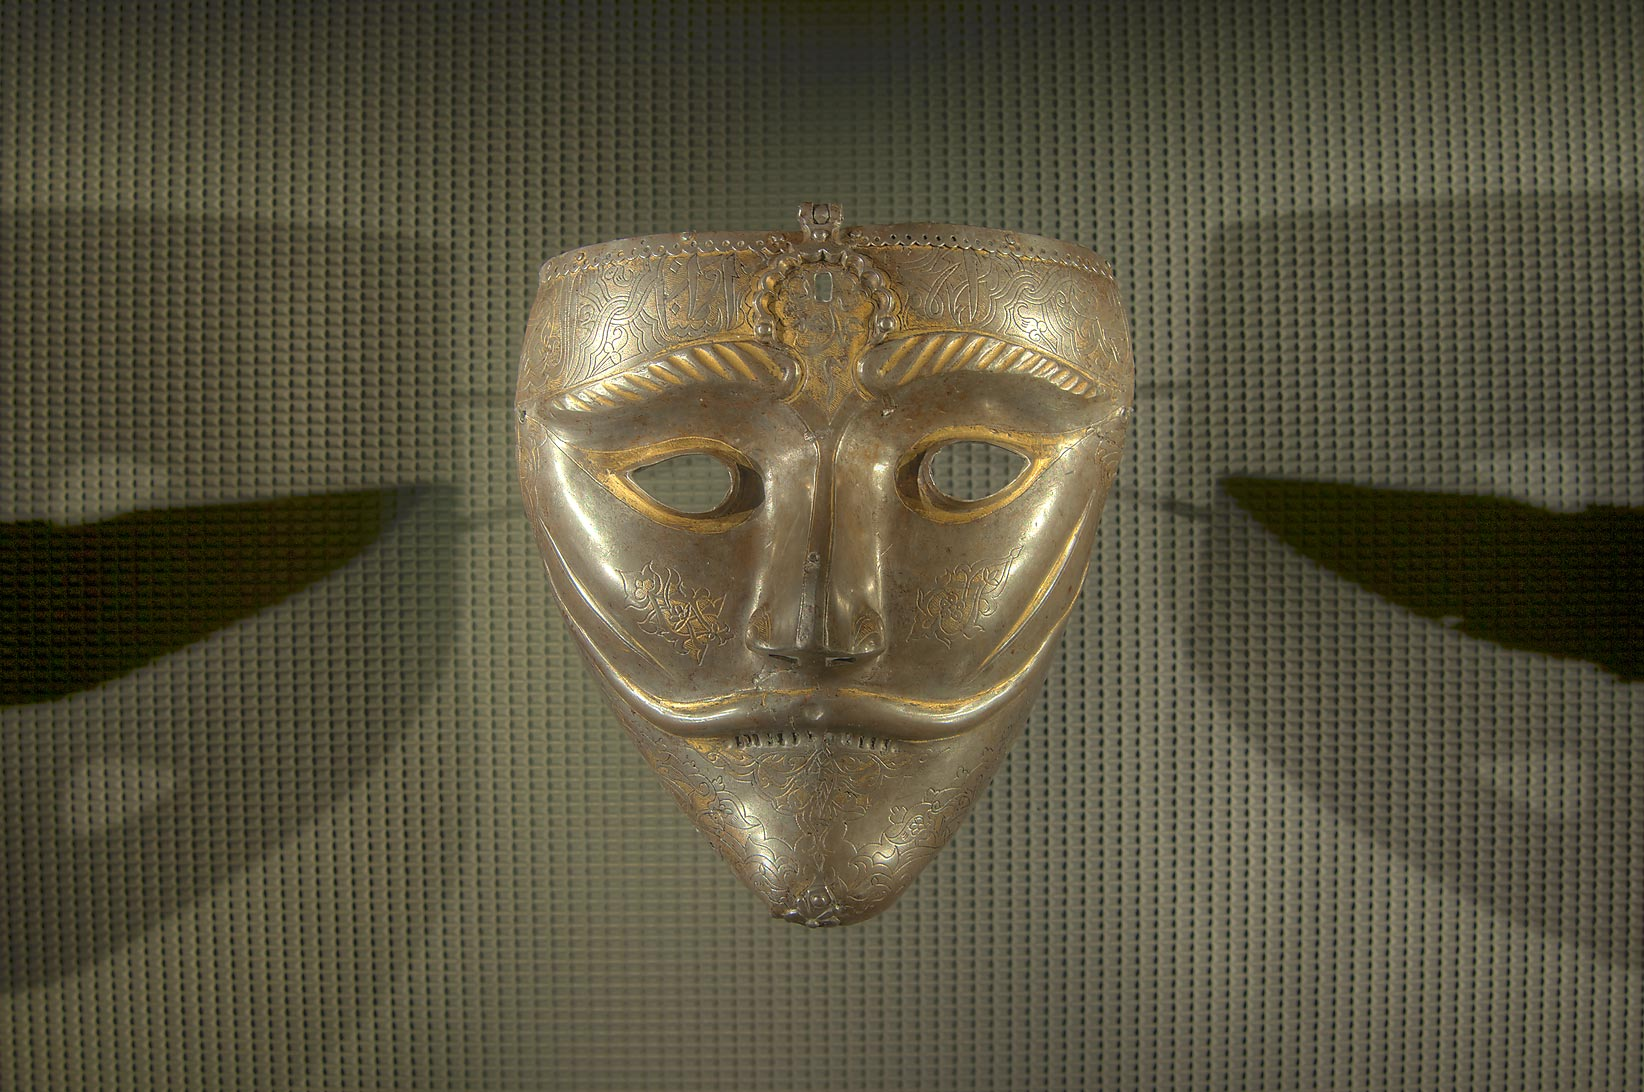 War mask (15th century, steel with gold inlay) on...in Museum of Islamic Art. Doha, Qatar